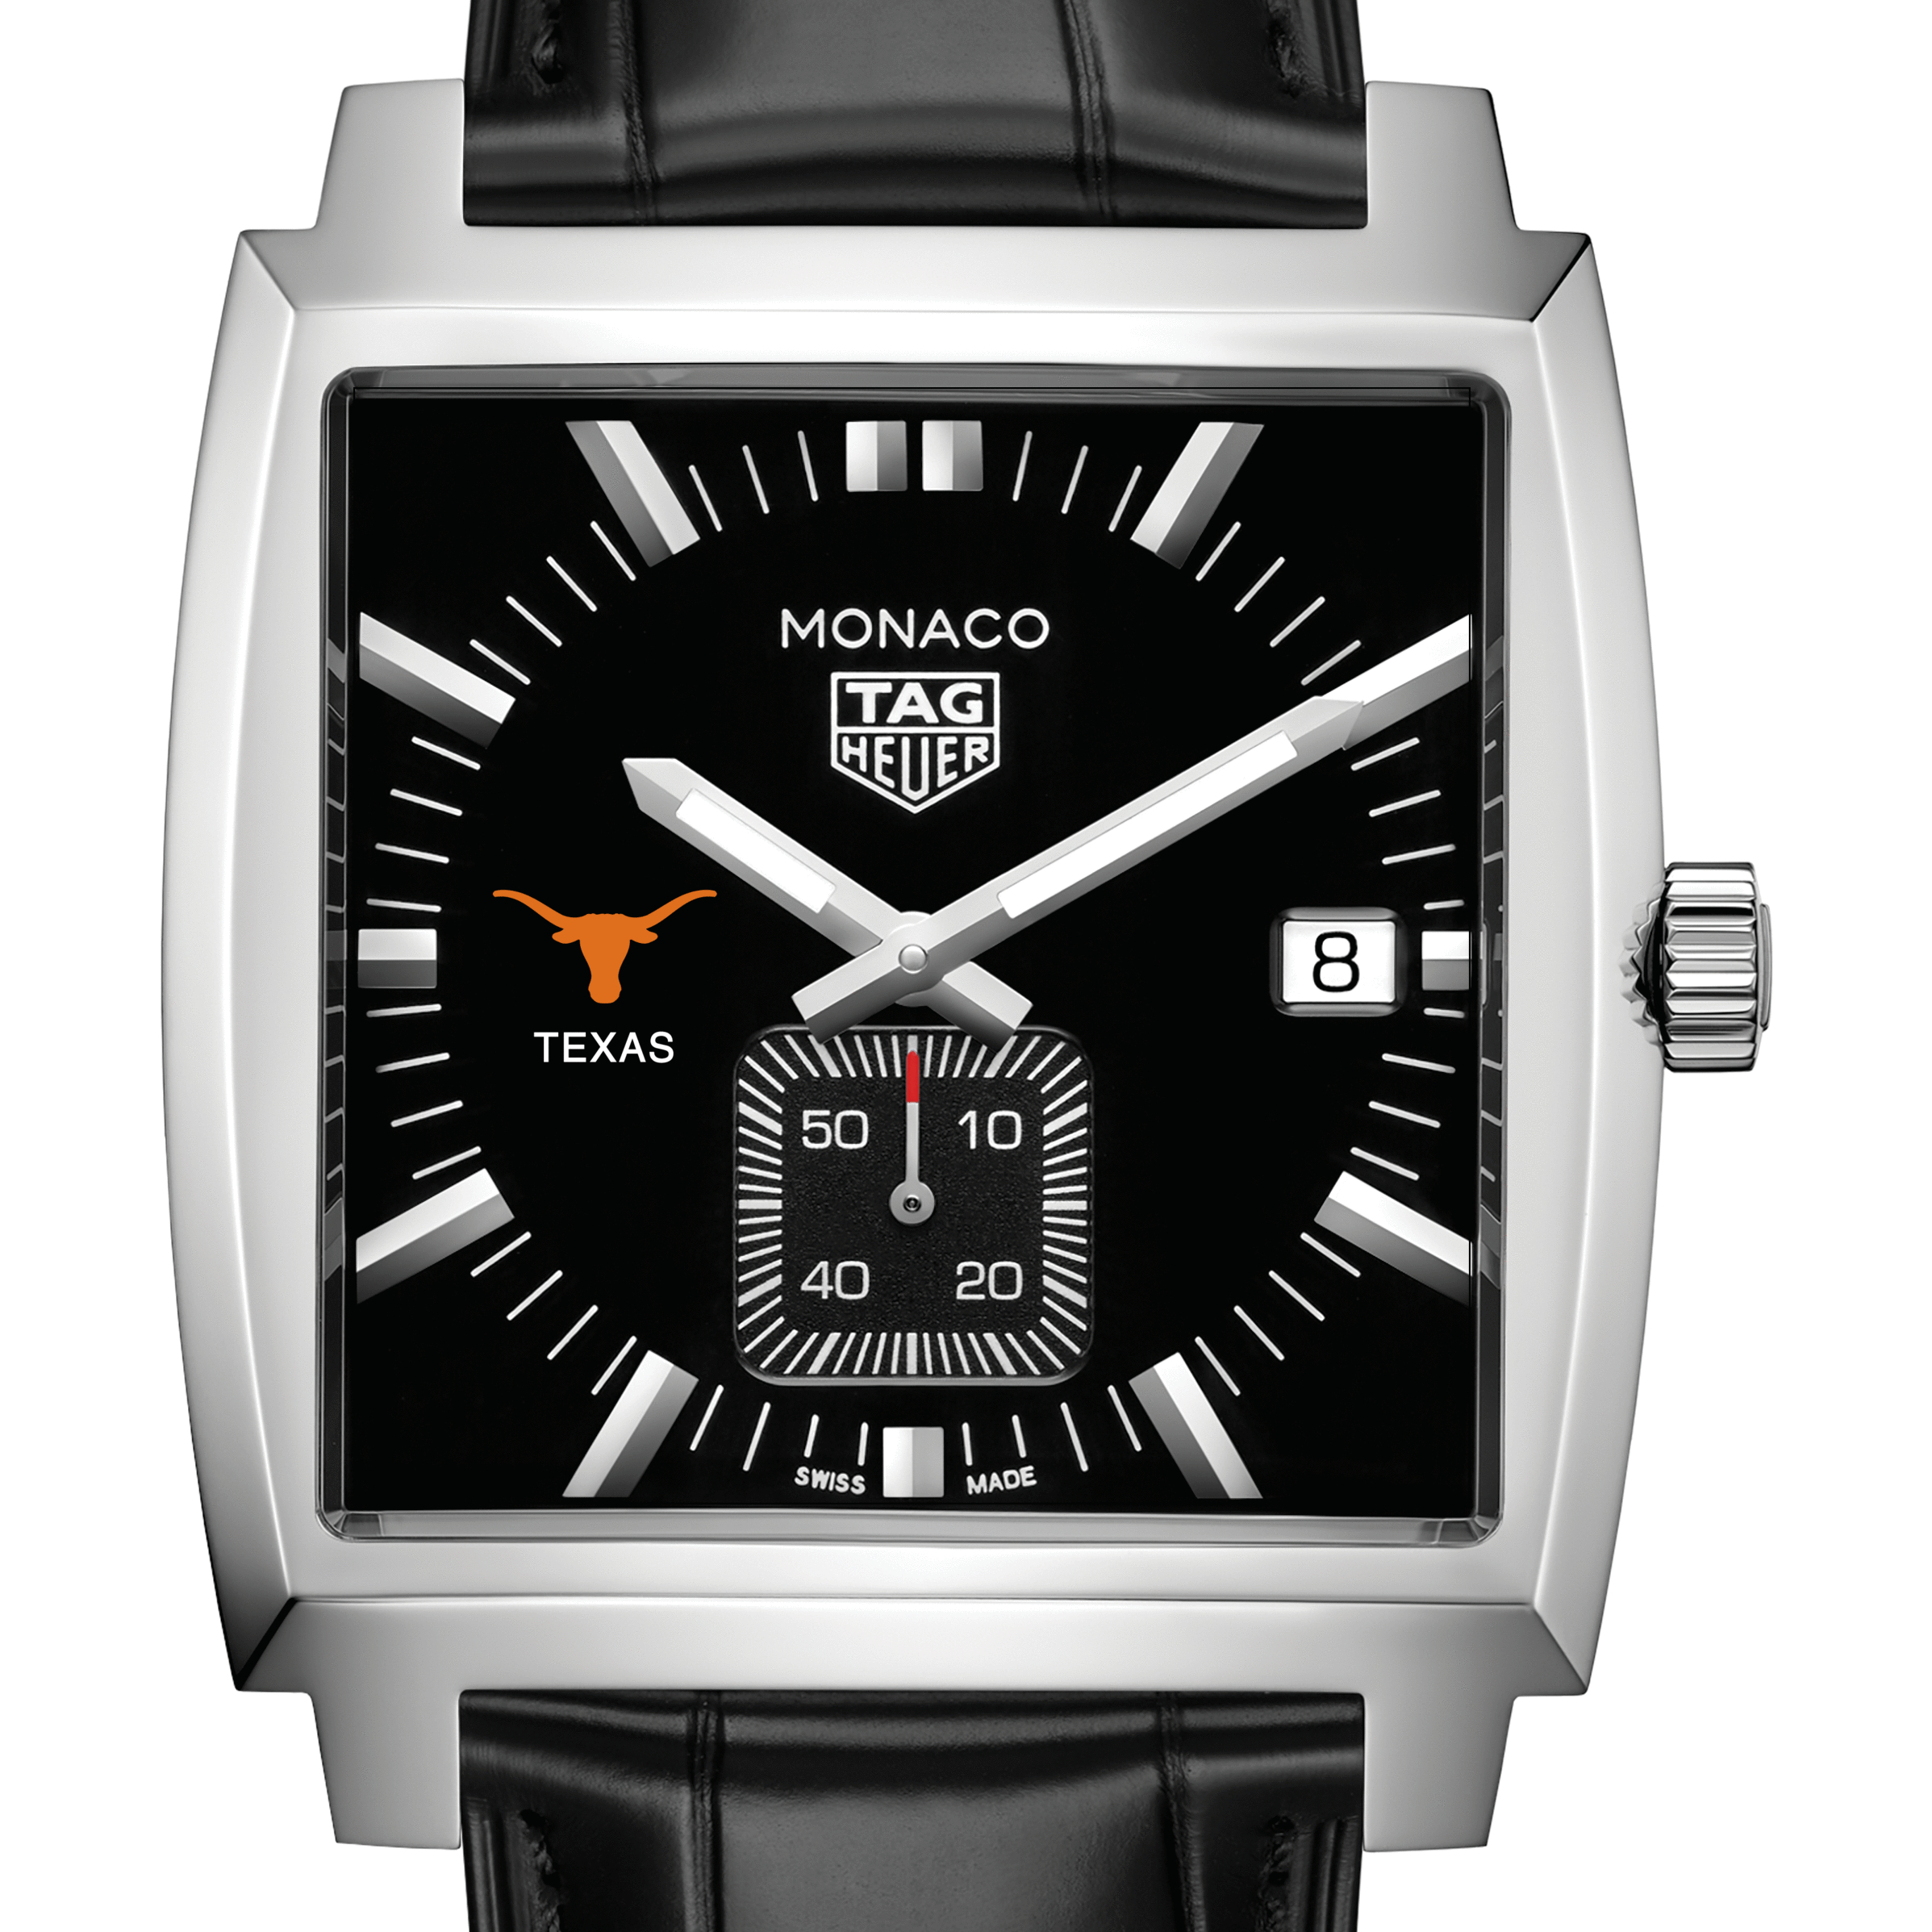 University of Texas TAG Heuer Monaco with Quartz Movement for Men